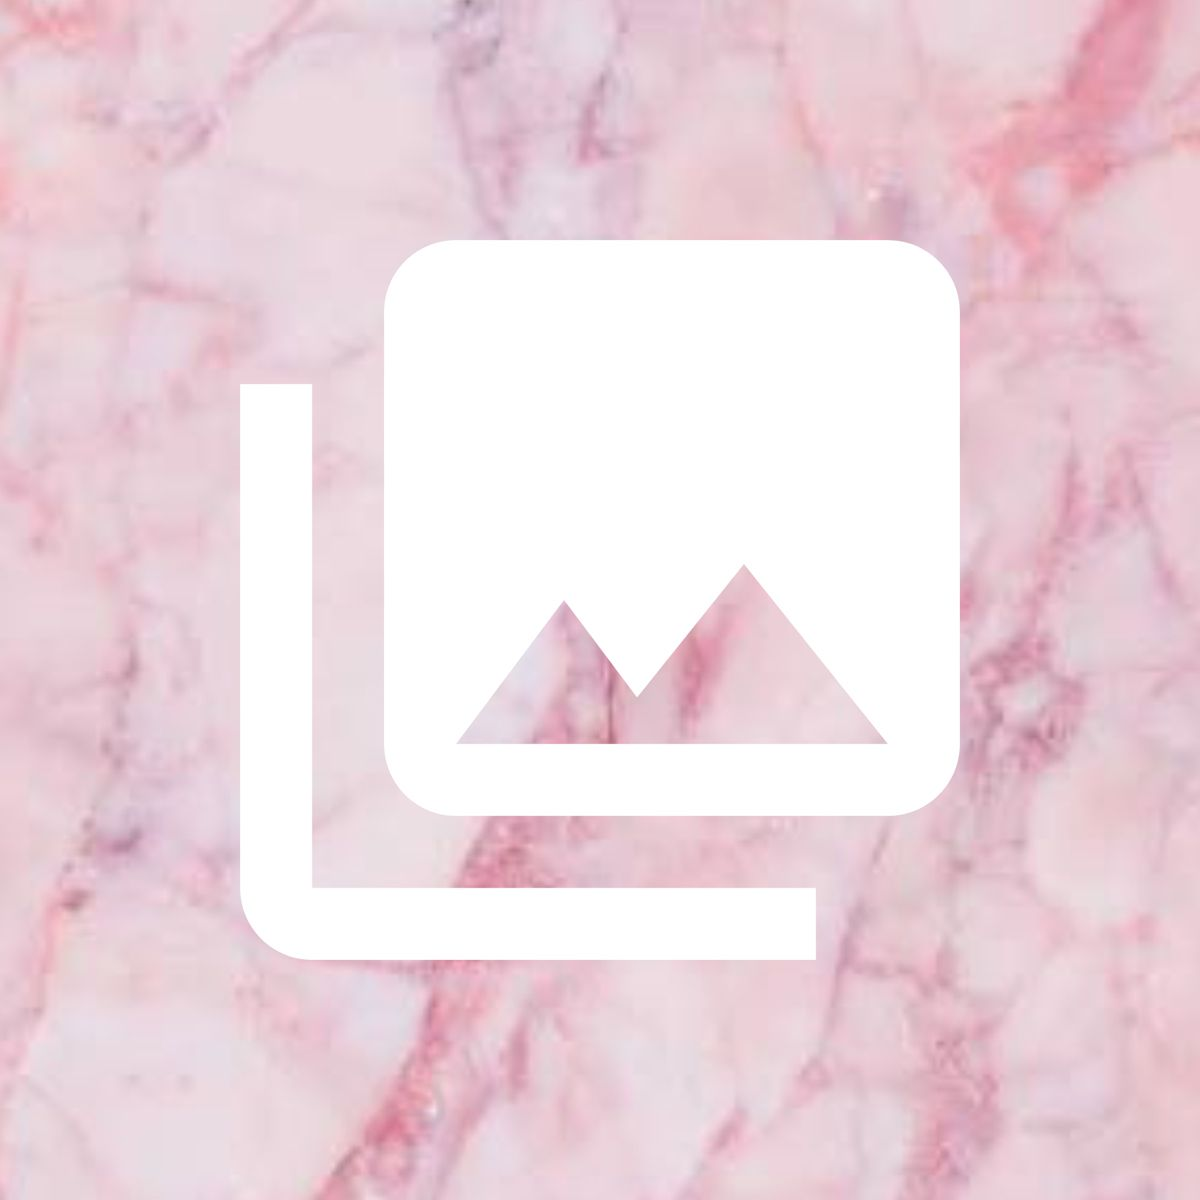 Pink Marble Photos In 2020 Chrome Apps Baby Pink Aesthetic Pink Marble